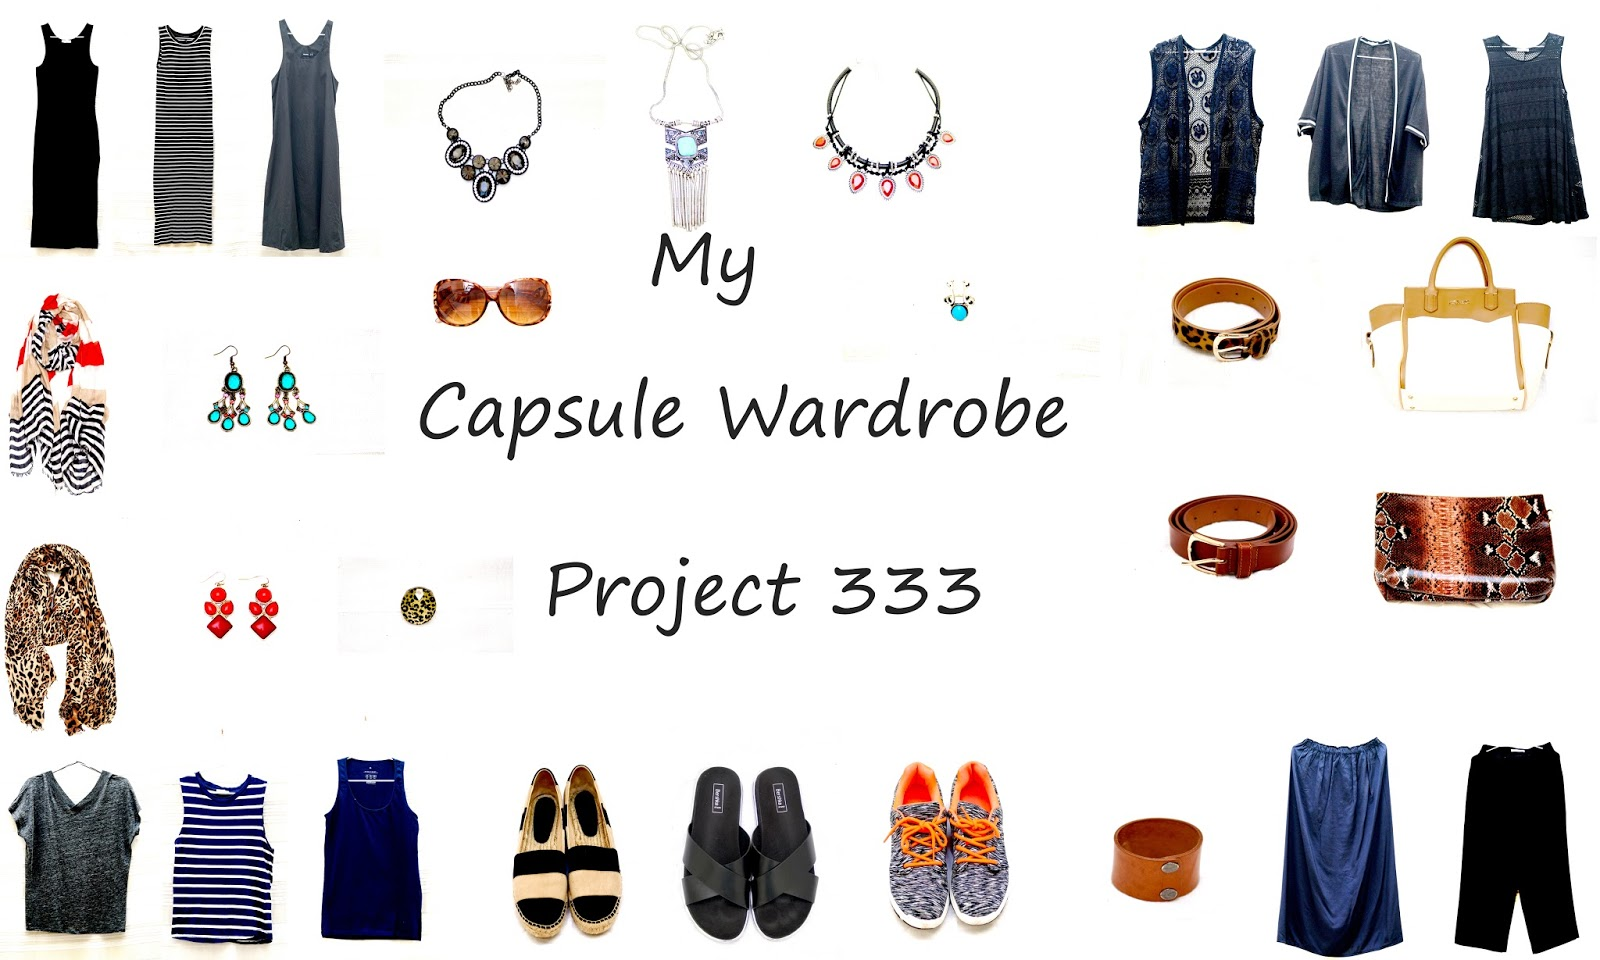 fashion me blog : My capsule wardrobe/ Project 333/outfit 3